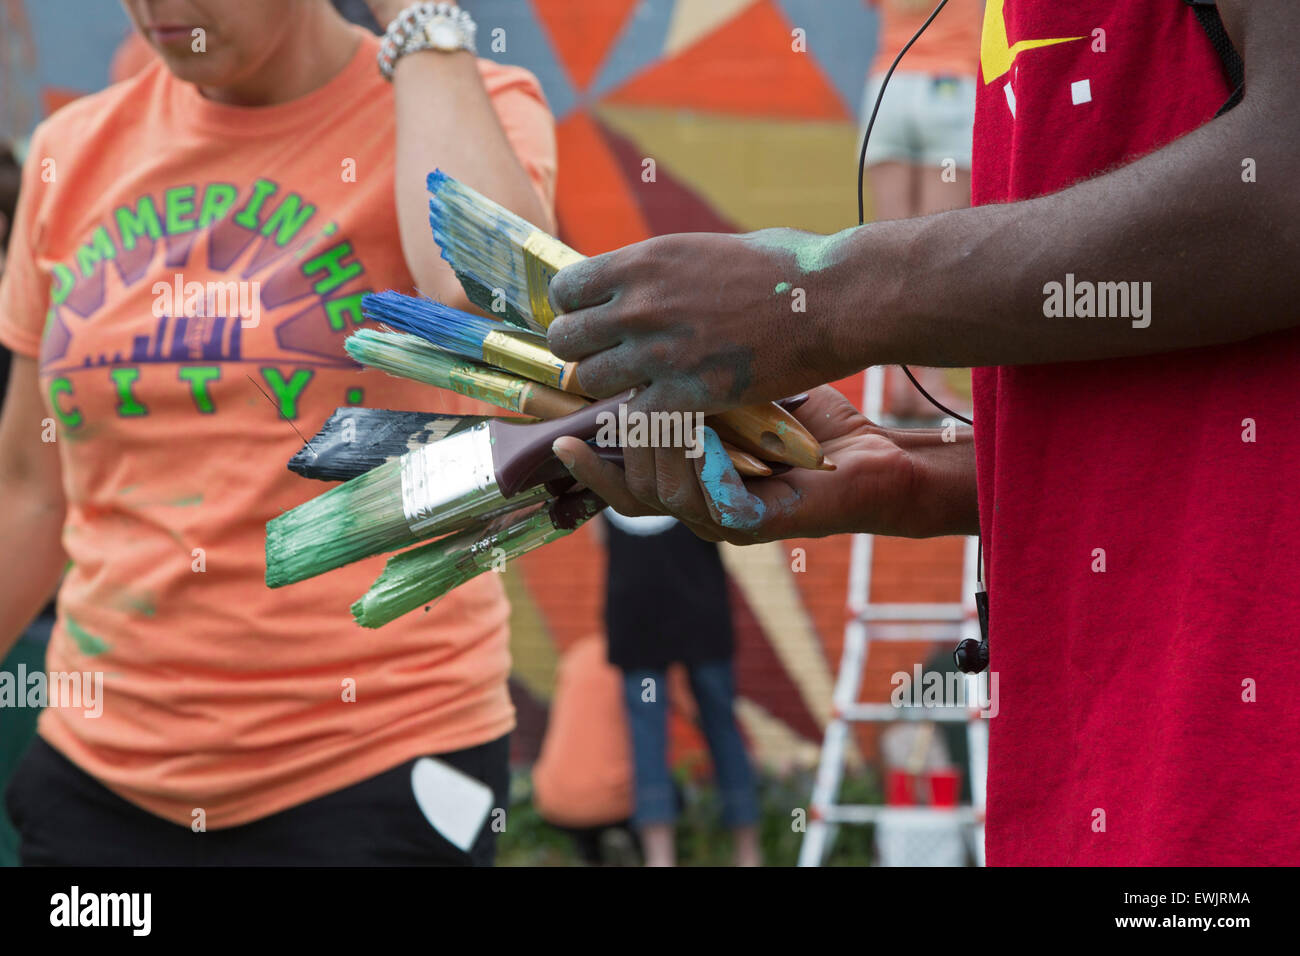 Detroit, Michigan - Young adults clean brushes after painting a mural in southwest Detroit. - Stock Image